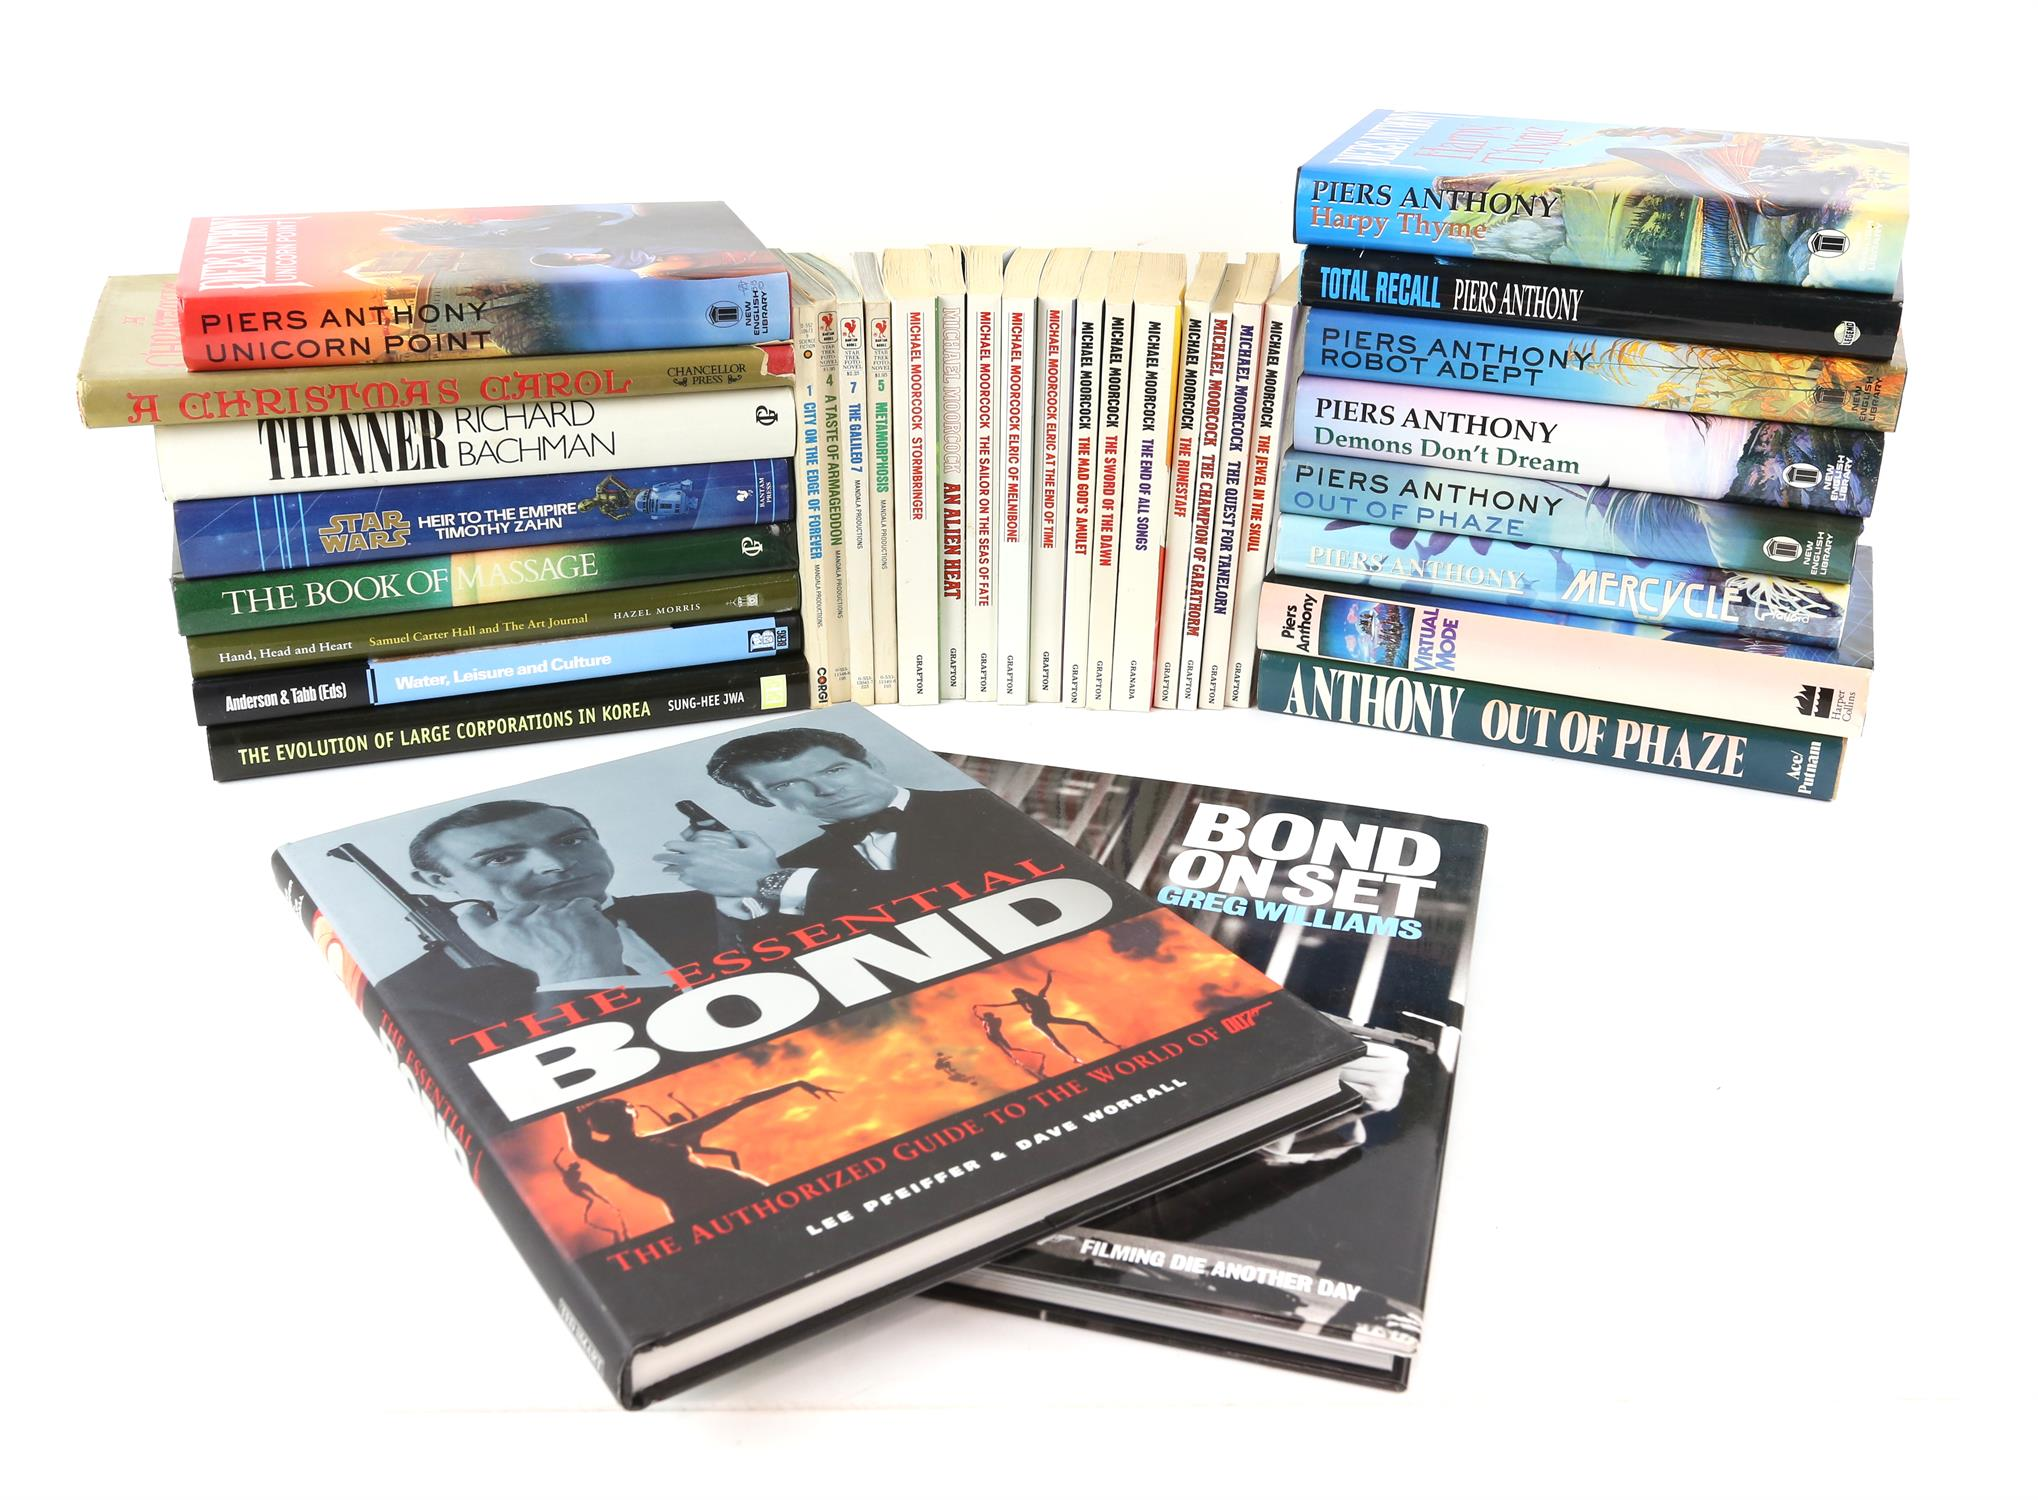 Various books including Chilton's Mustang, 1965-1968 with several other related books, - Image 2 of 4